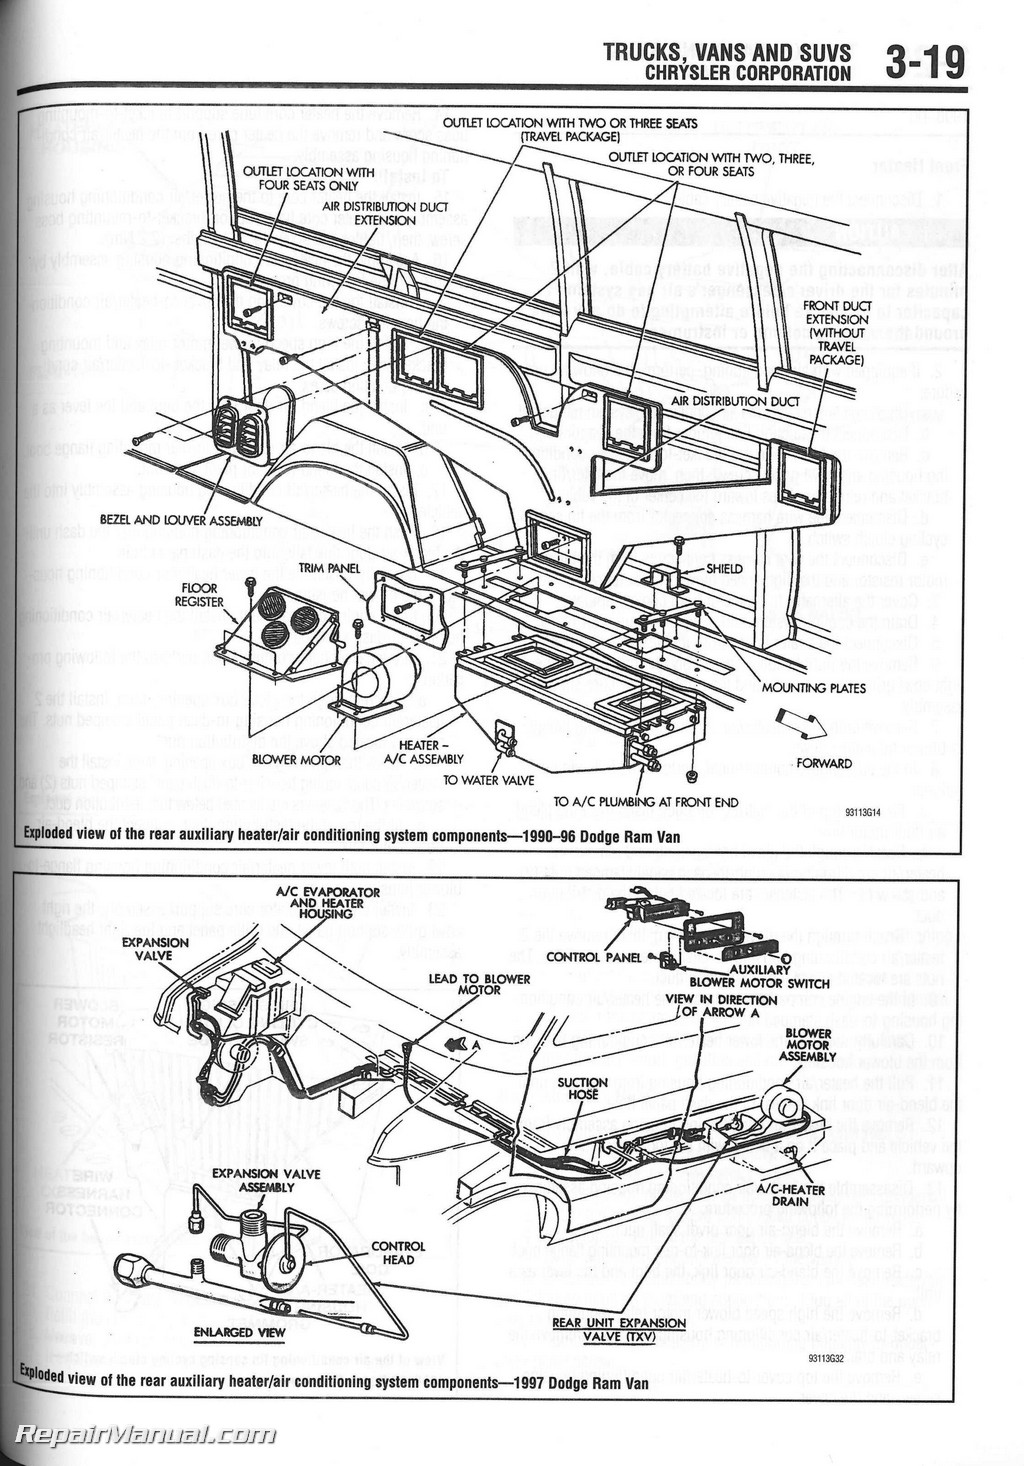 wiring diagram 1991 chrysler new yorker